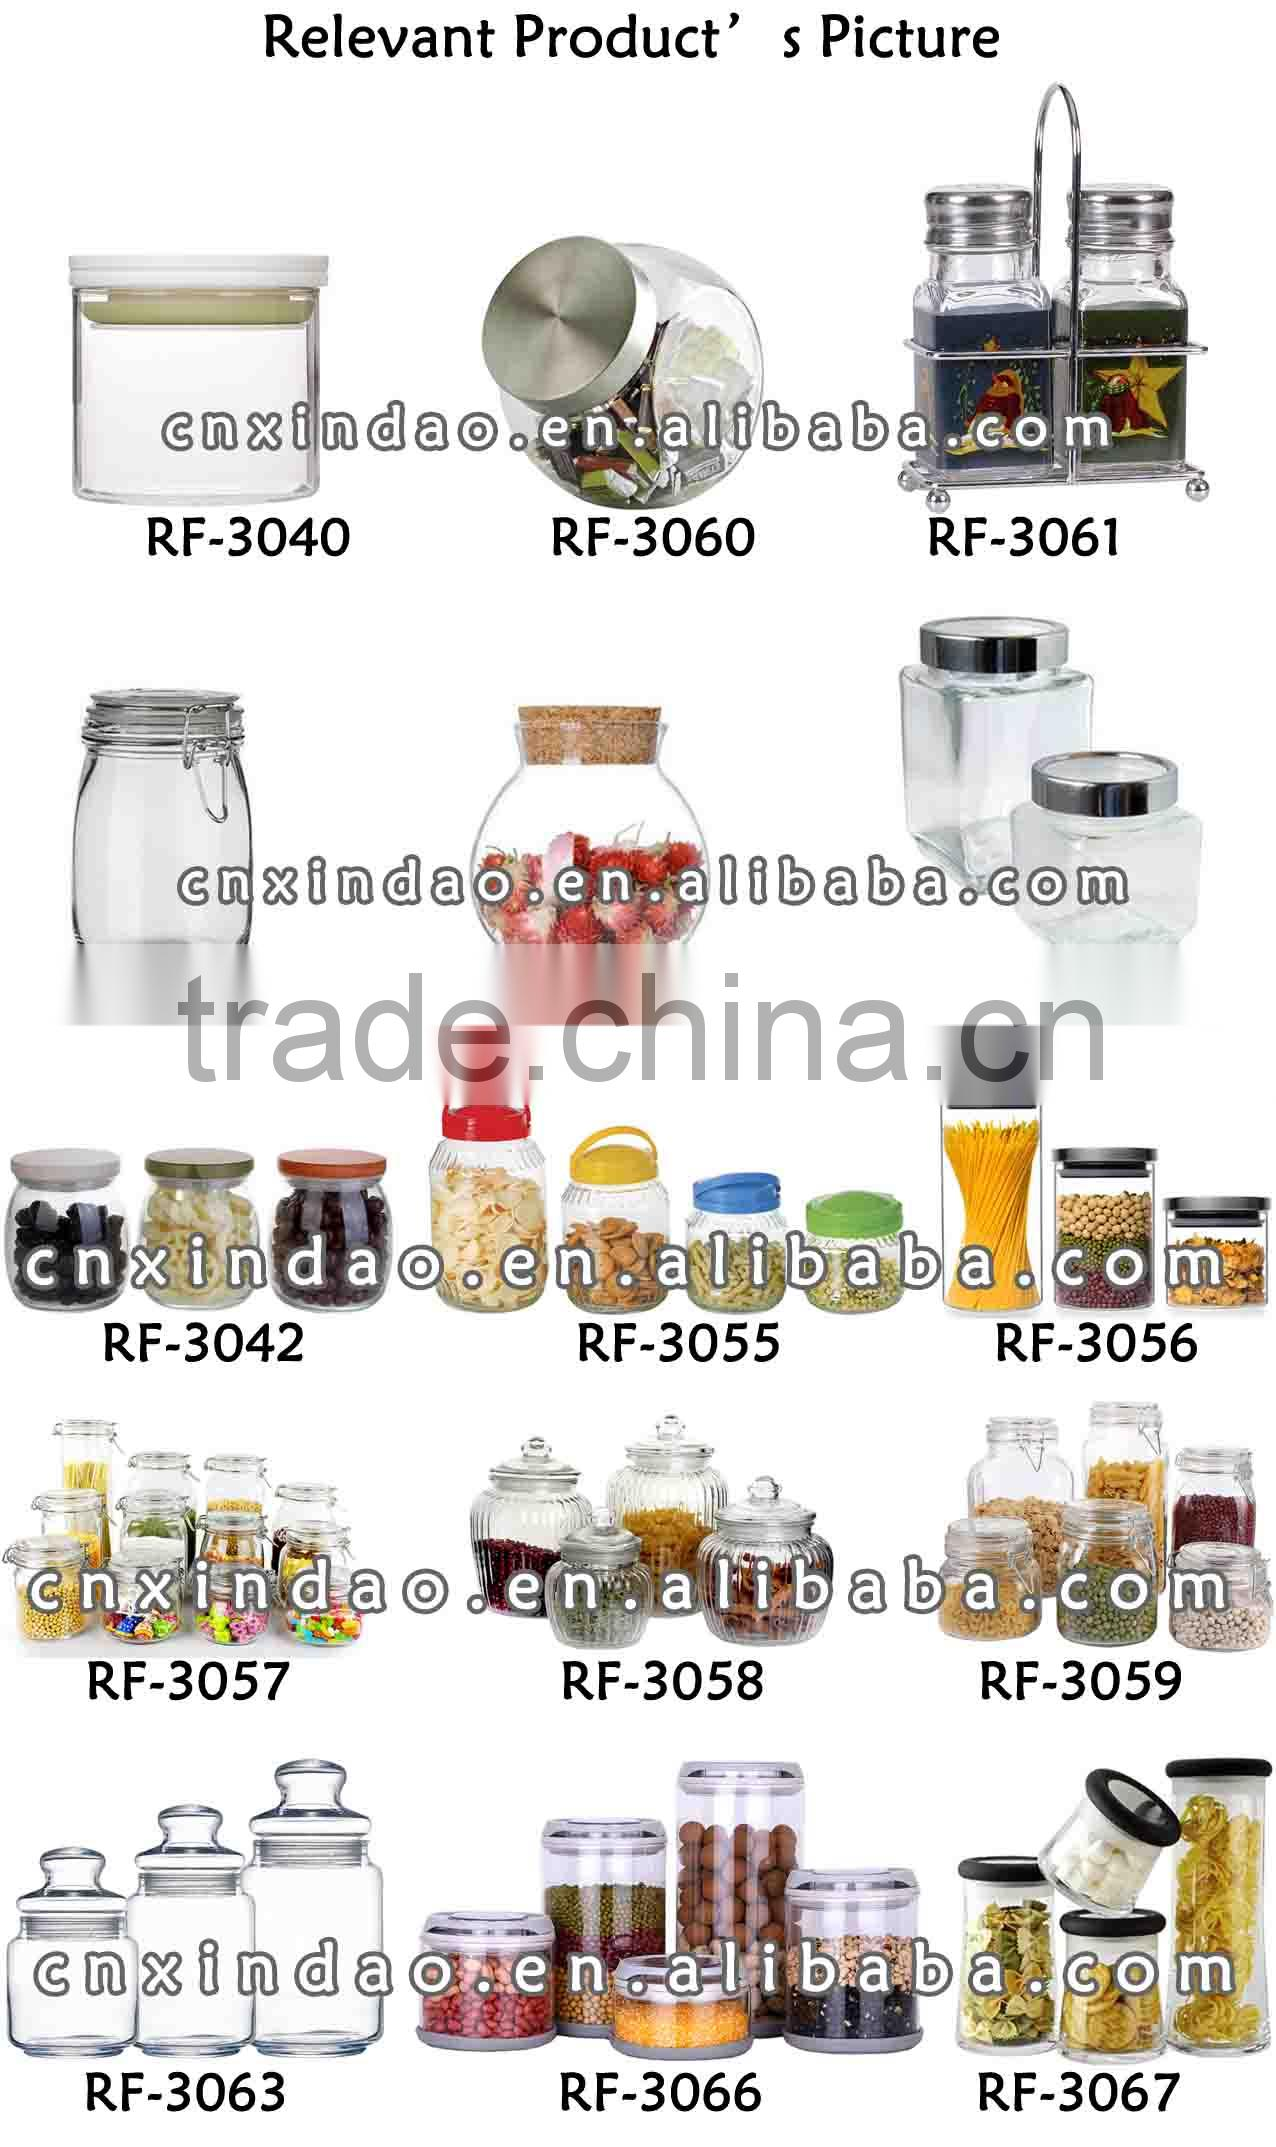 Hot Sale Popular Daily Used Professional Glass Jar with Lid for Kitchenware